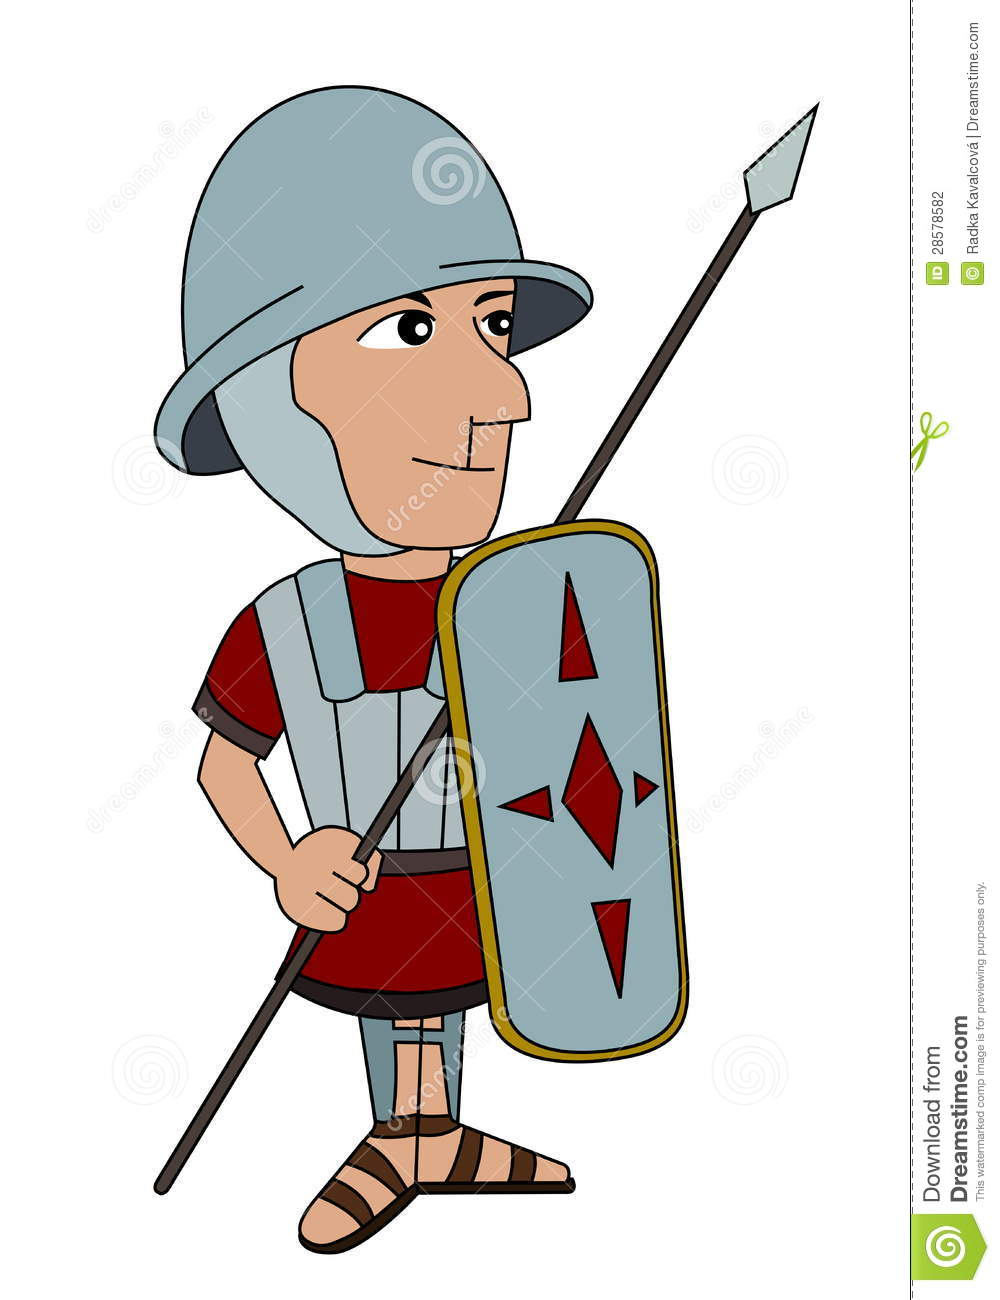 Punic wars - Illustration of a Roman legionnaire isolated on a white ...